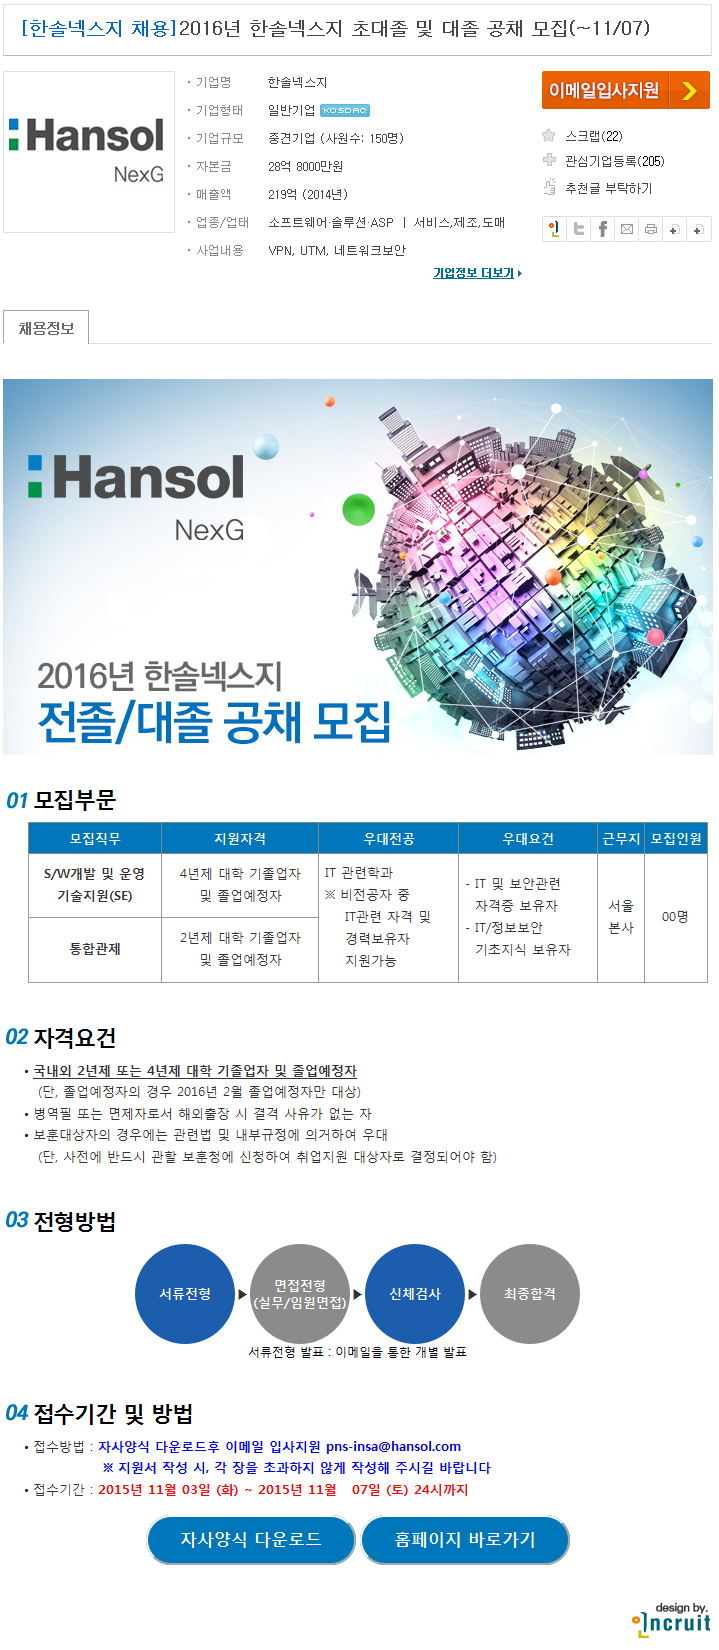 http://customerfile.incruit.com/jobpost/hansol.png